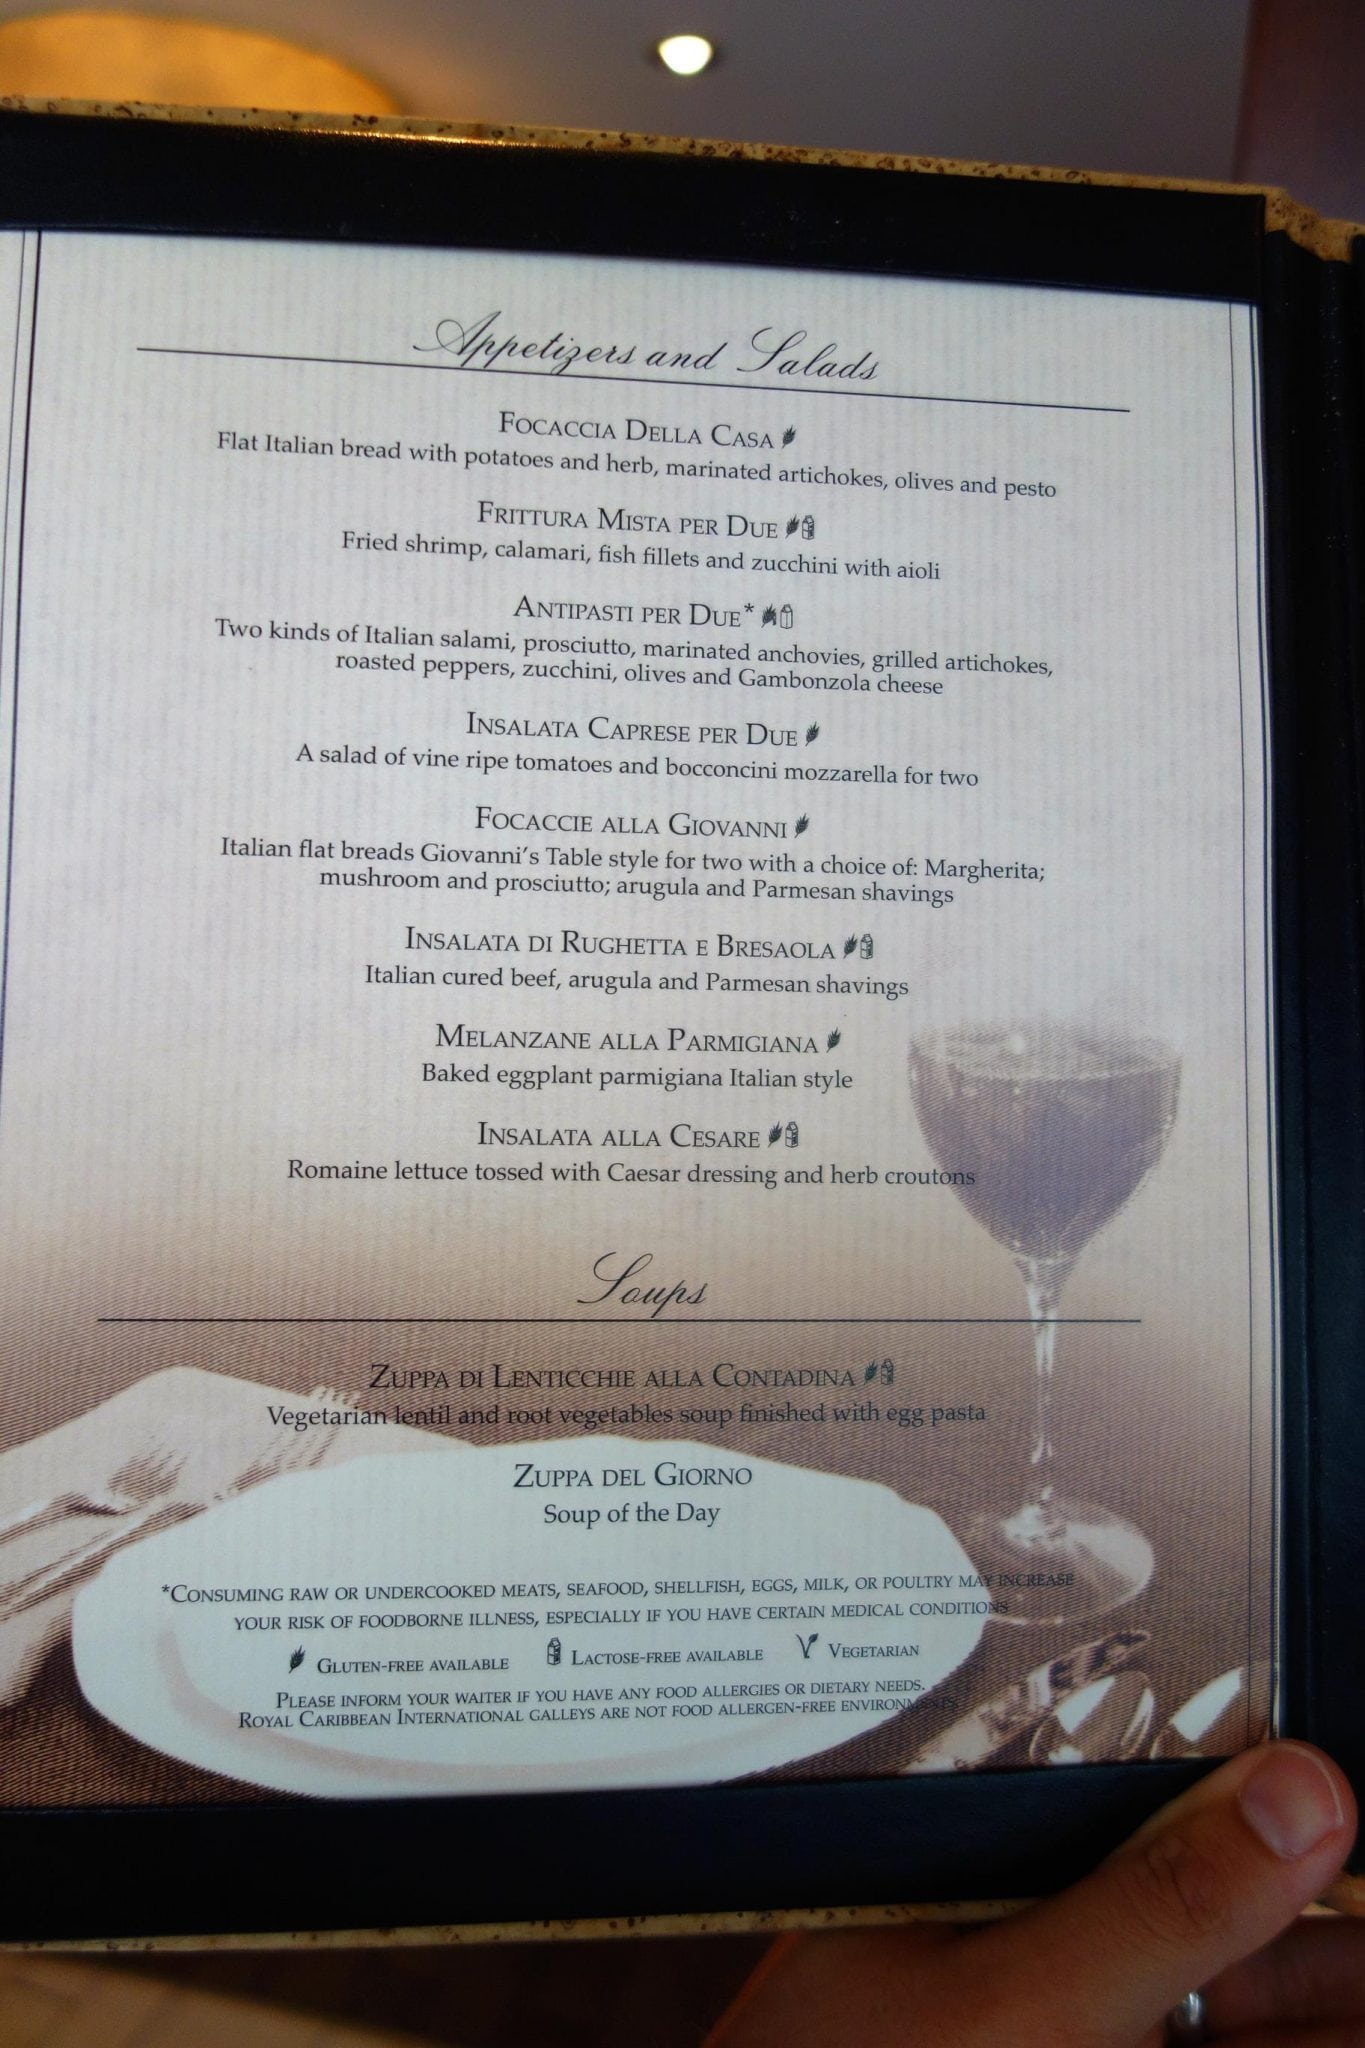 New main dining room menus on oasis of the seas for The table restaurant menu